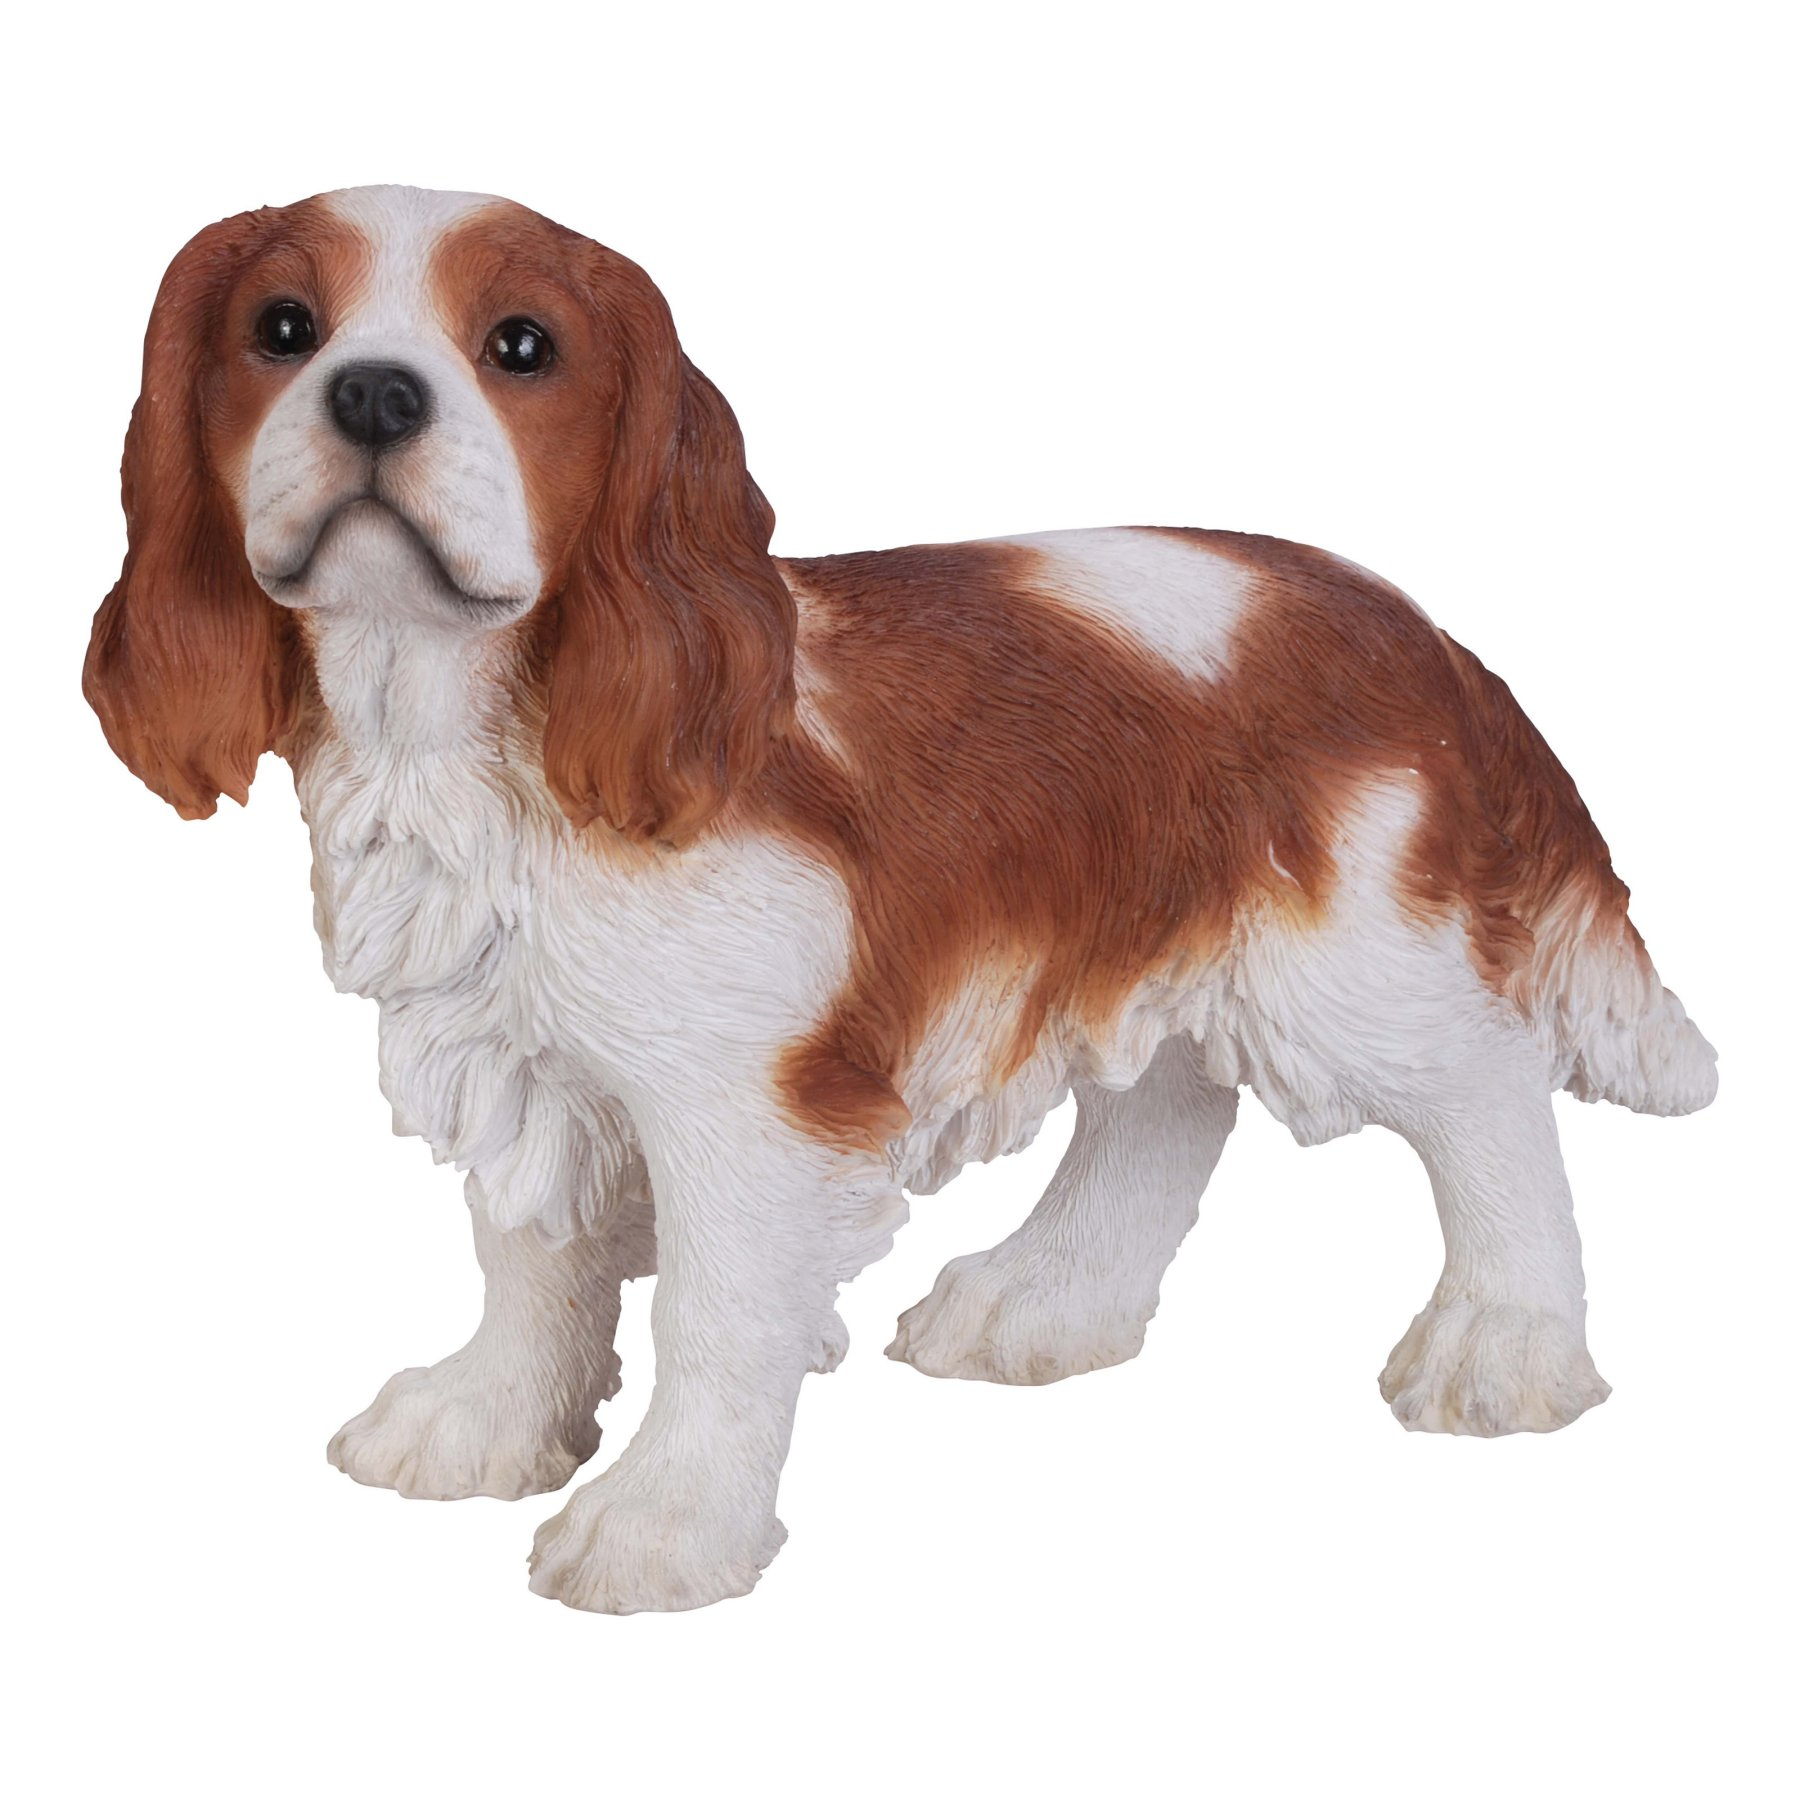 Hiline gift ltd brown and white king charles spaniel standing